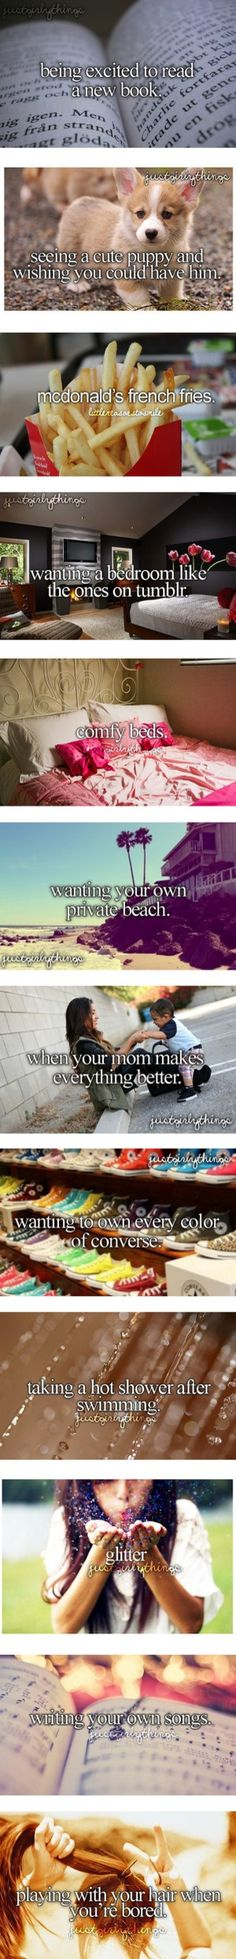 """just girly things~things only girls understand"" by directionerforlife5 ❤ liked on Polyvore"